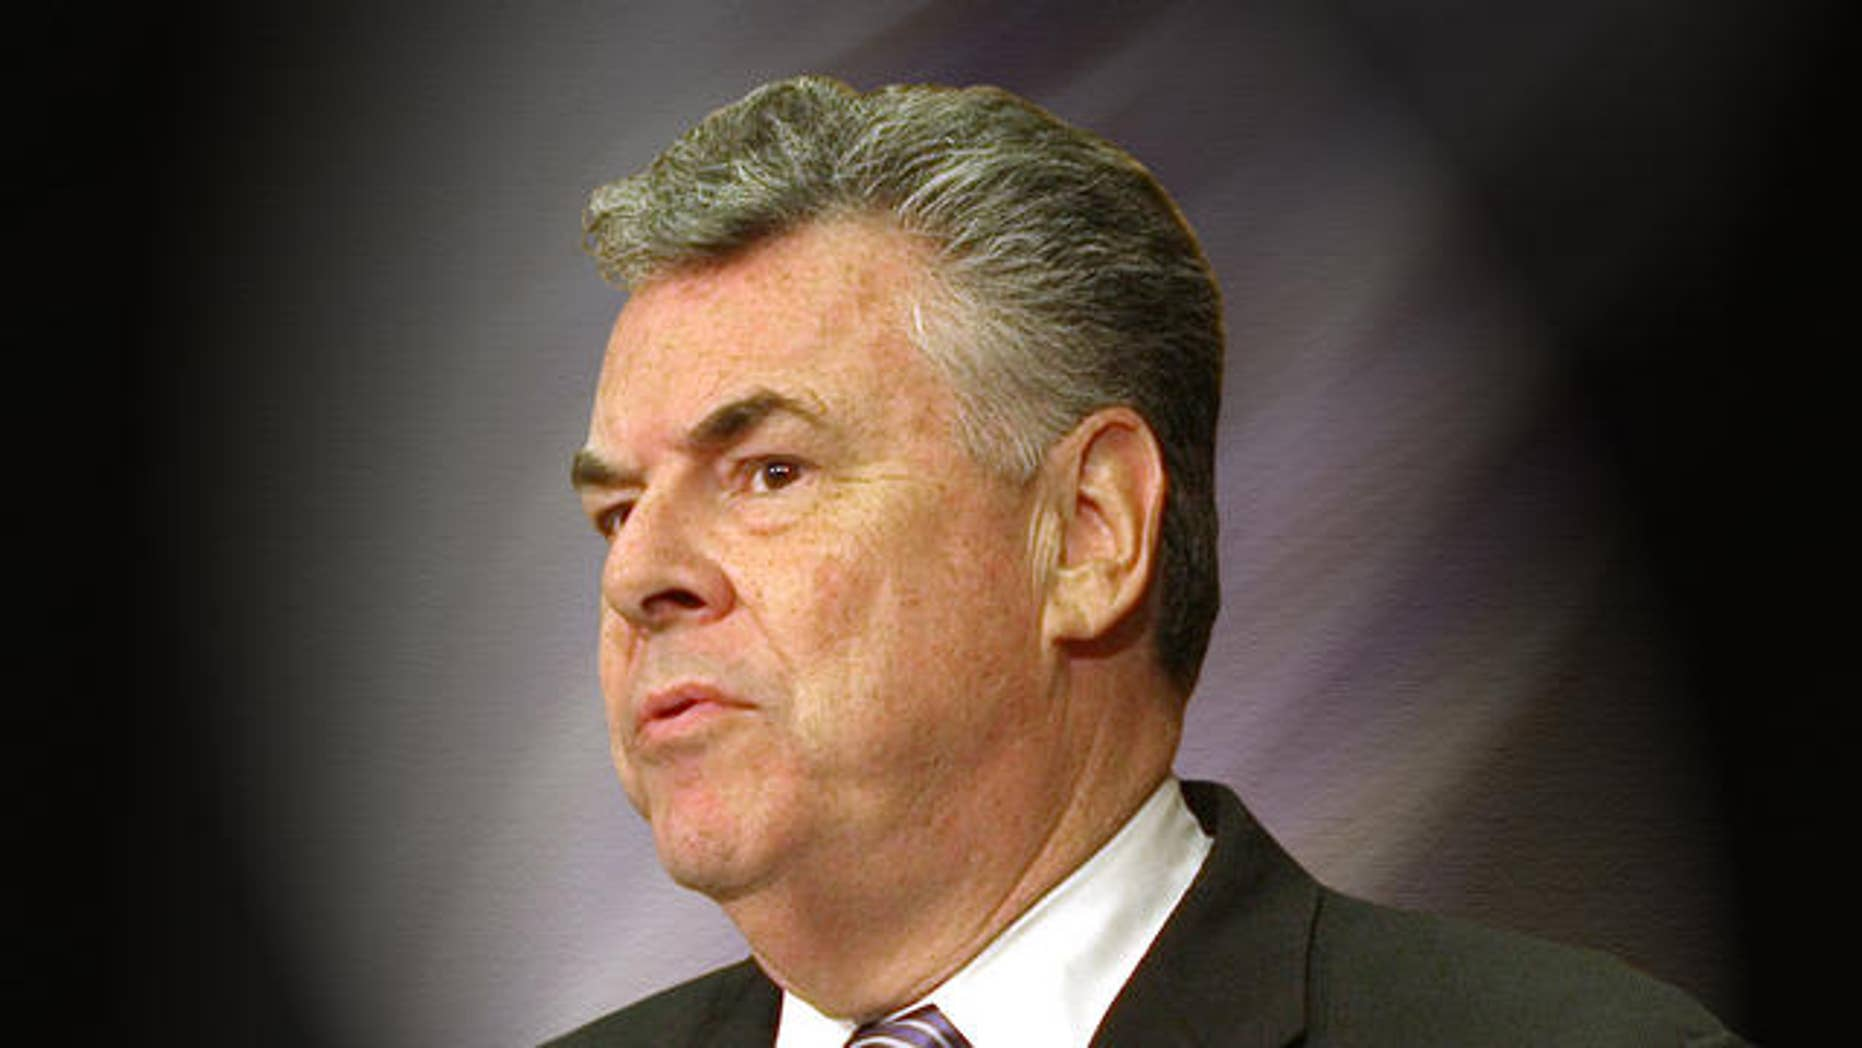 Rep. Peter King Rep. Peter King, the new chairman of the Homeland Security Committee, has ignited a storm of controversy for planning hearings next month on the growing threat of radical Islam (AP)